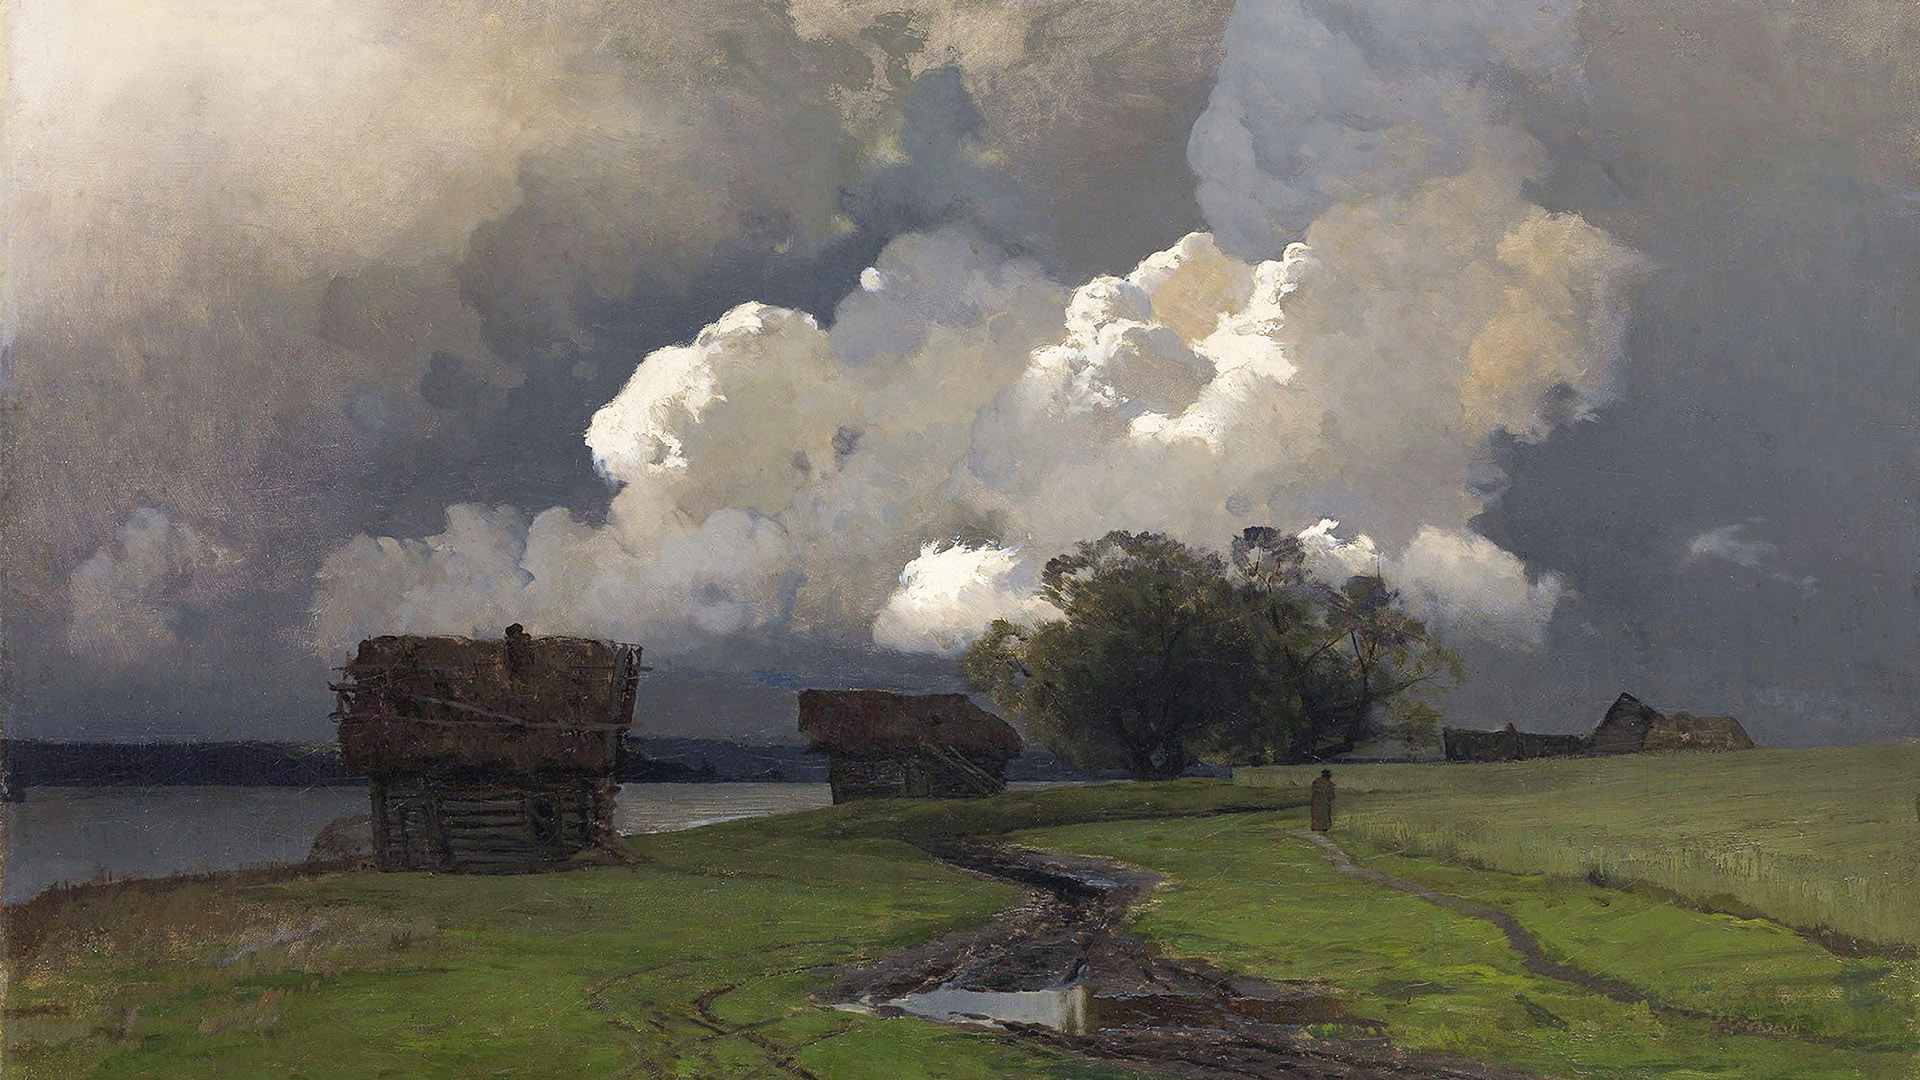 isaac levitan - In the vicinity of the SS monastery 1920x1080